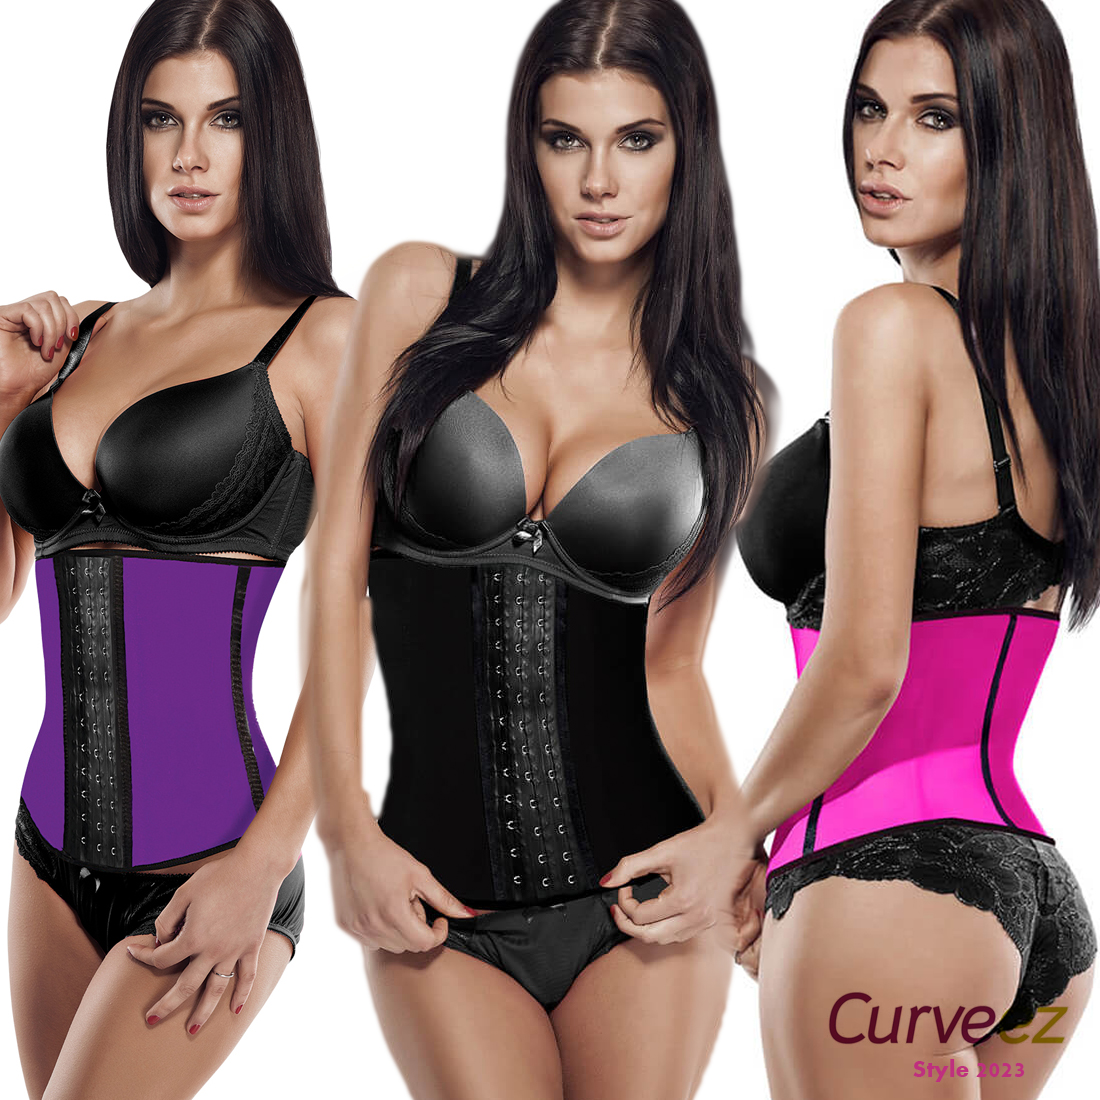 5e772752b0 Curveez Faja Termico Latex Waist Trainer Slim Abs Control Shaper Hook  Cincher